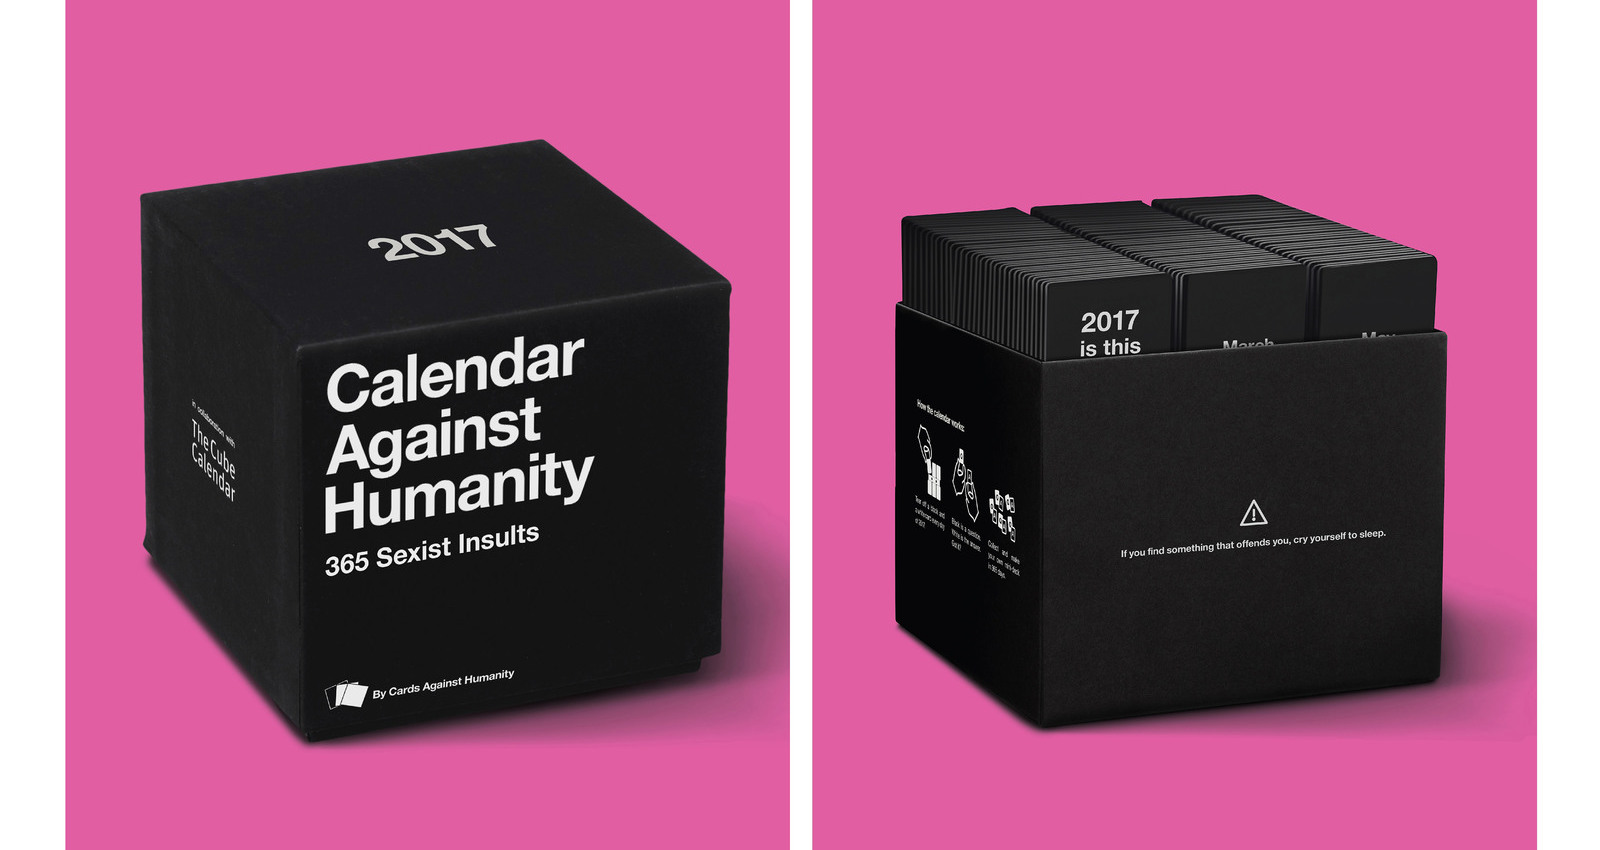 Calendar Against Humanity